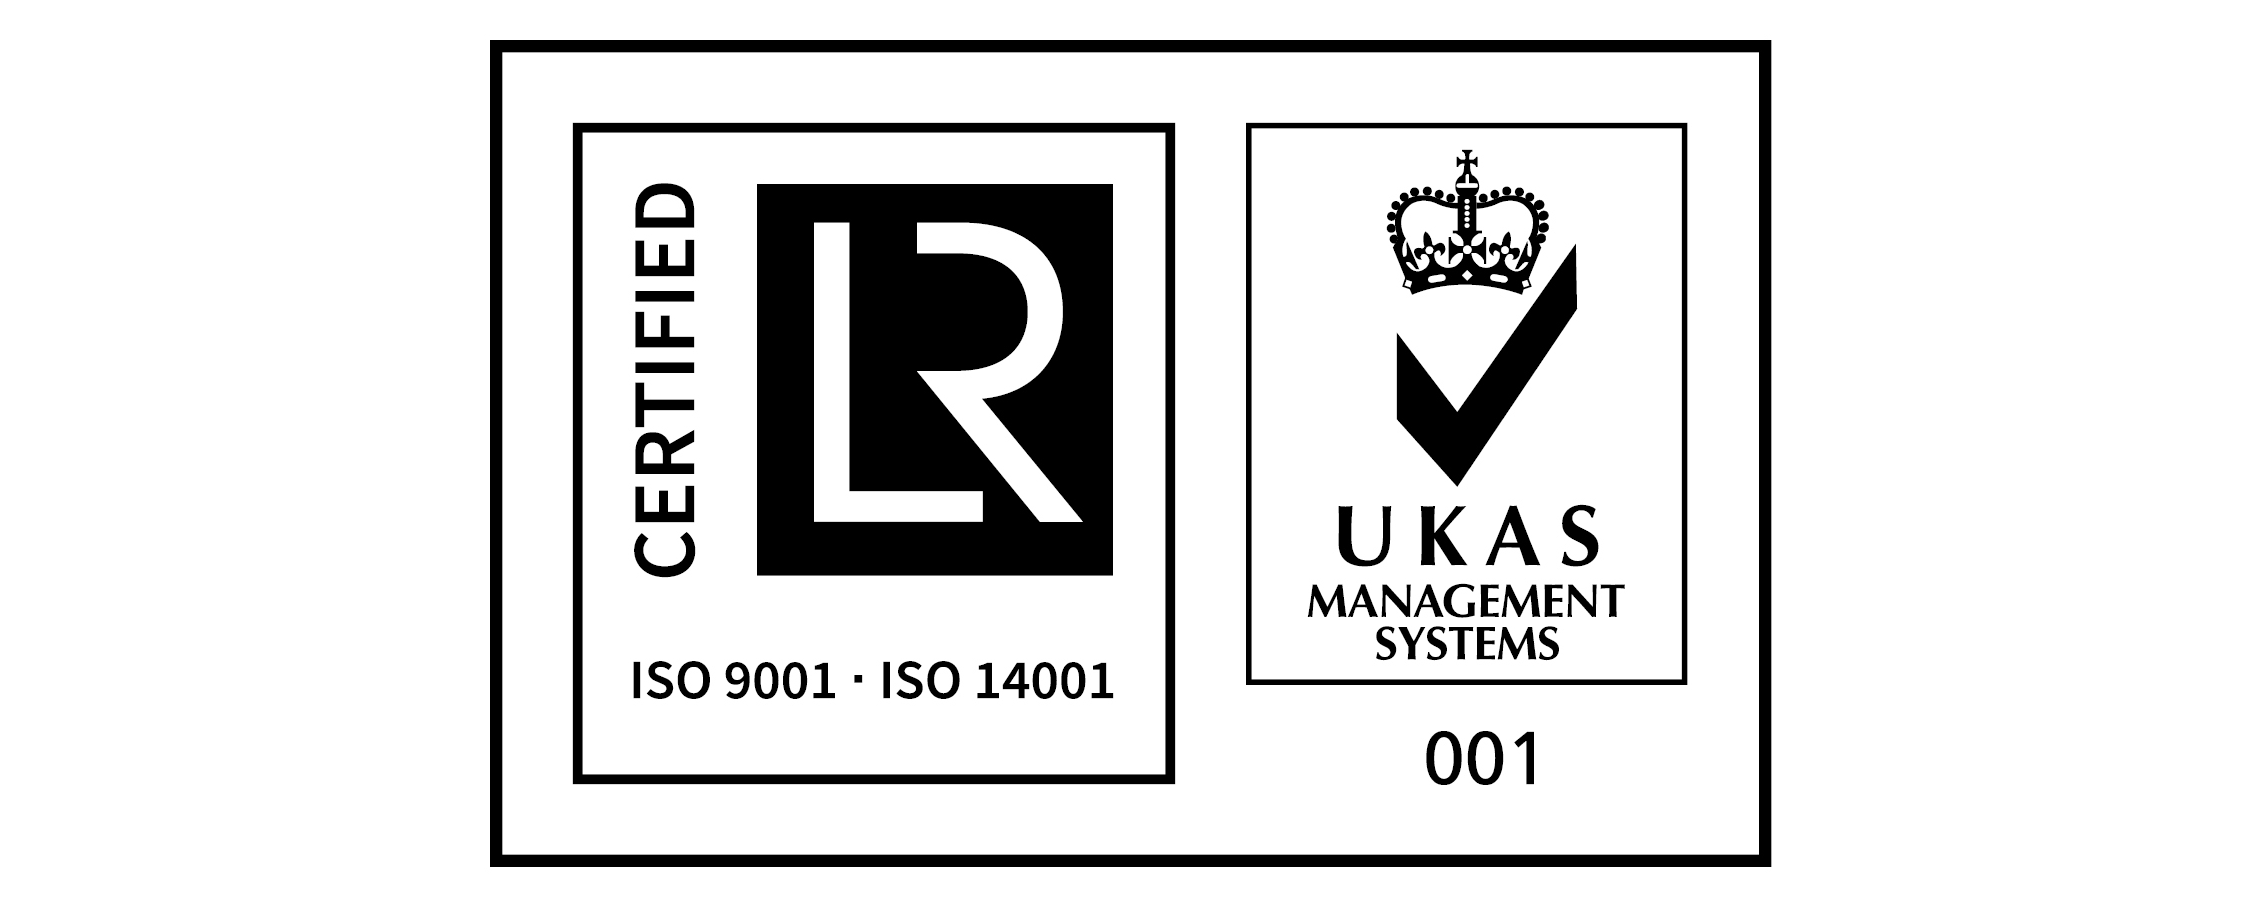 United Kingdom Accreditation Service Product Certification